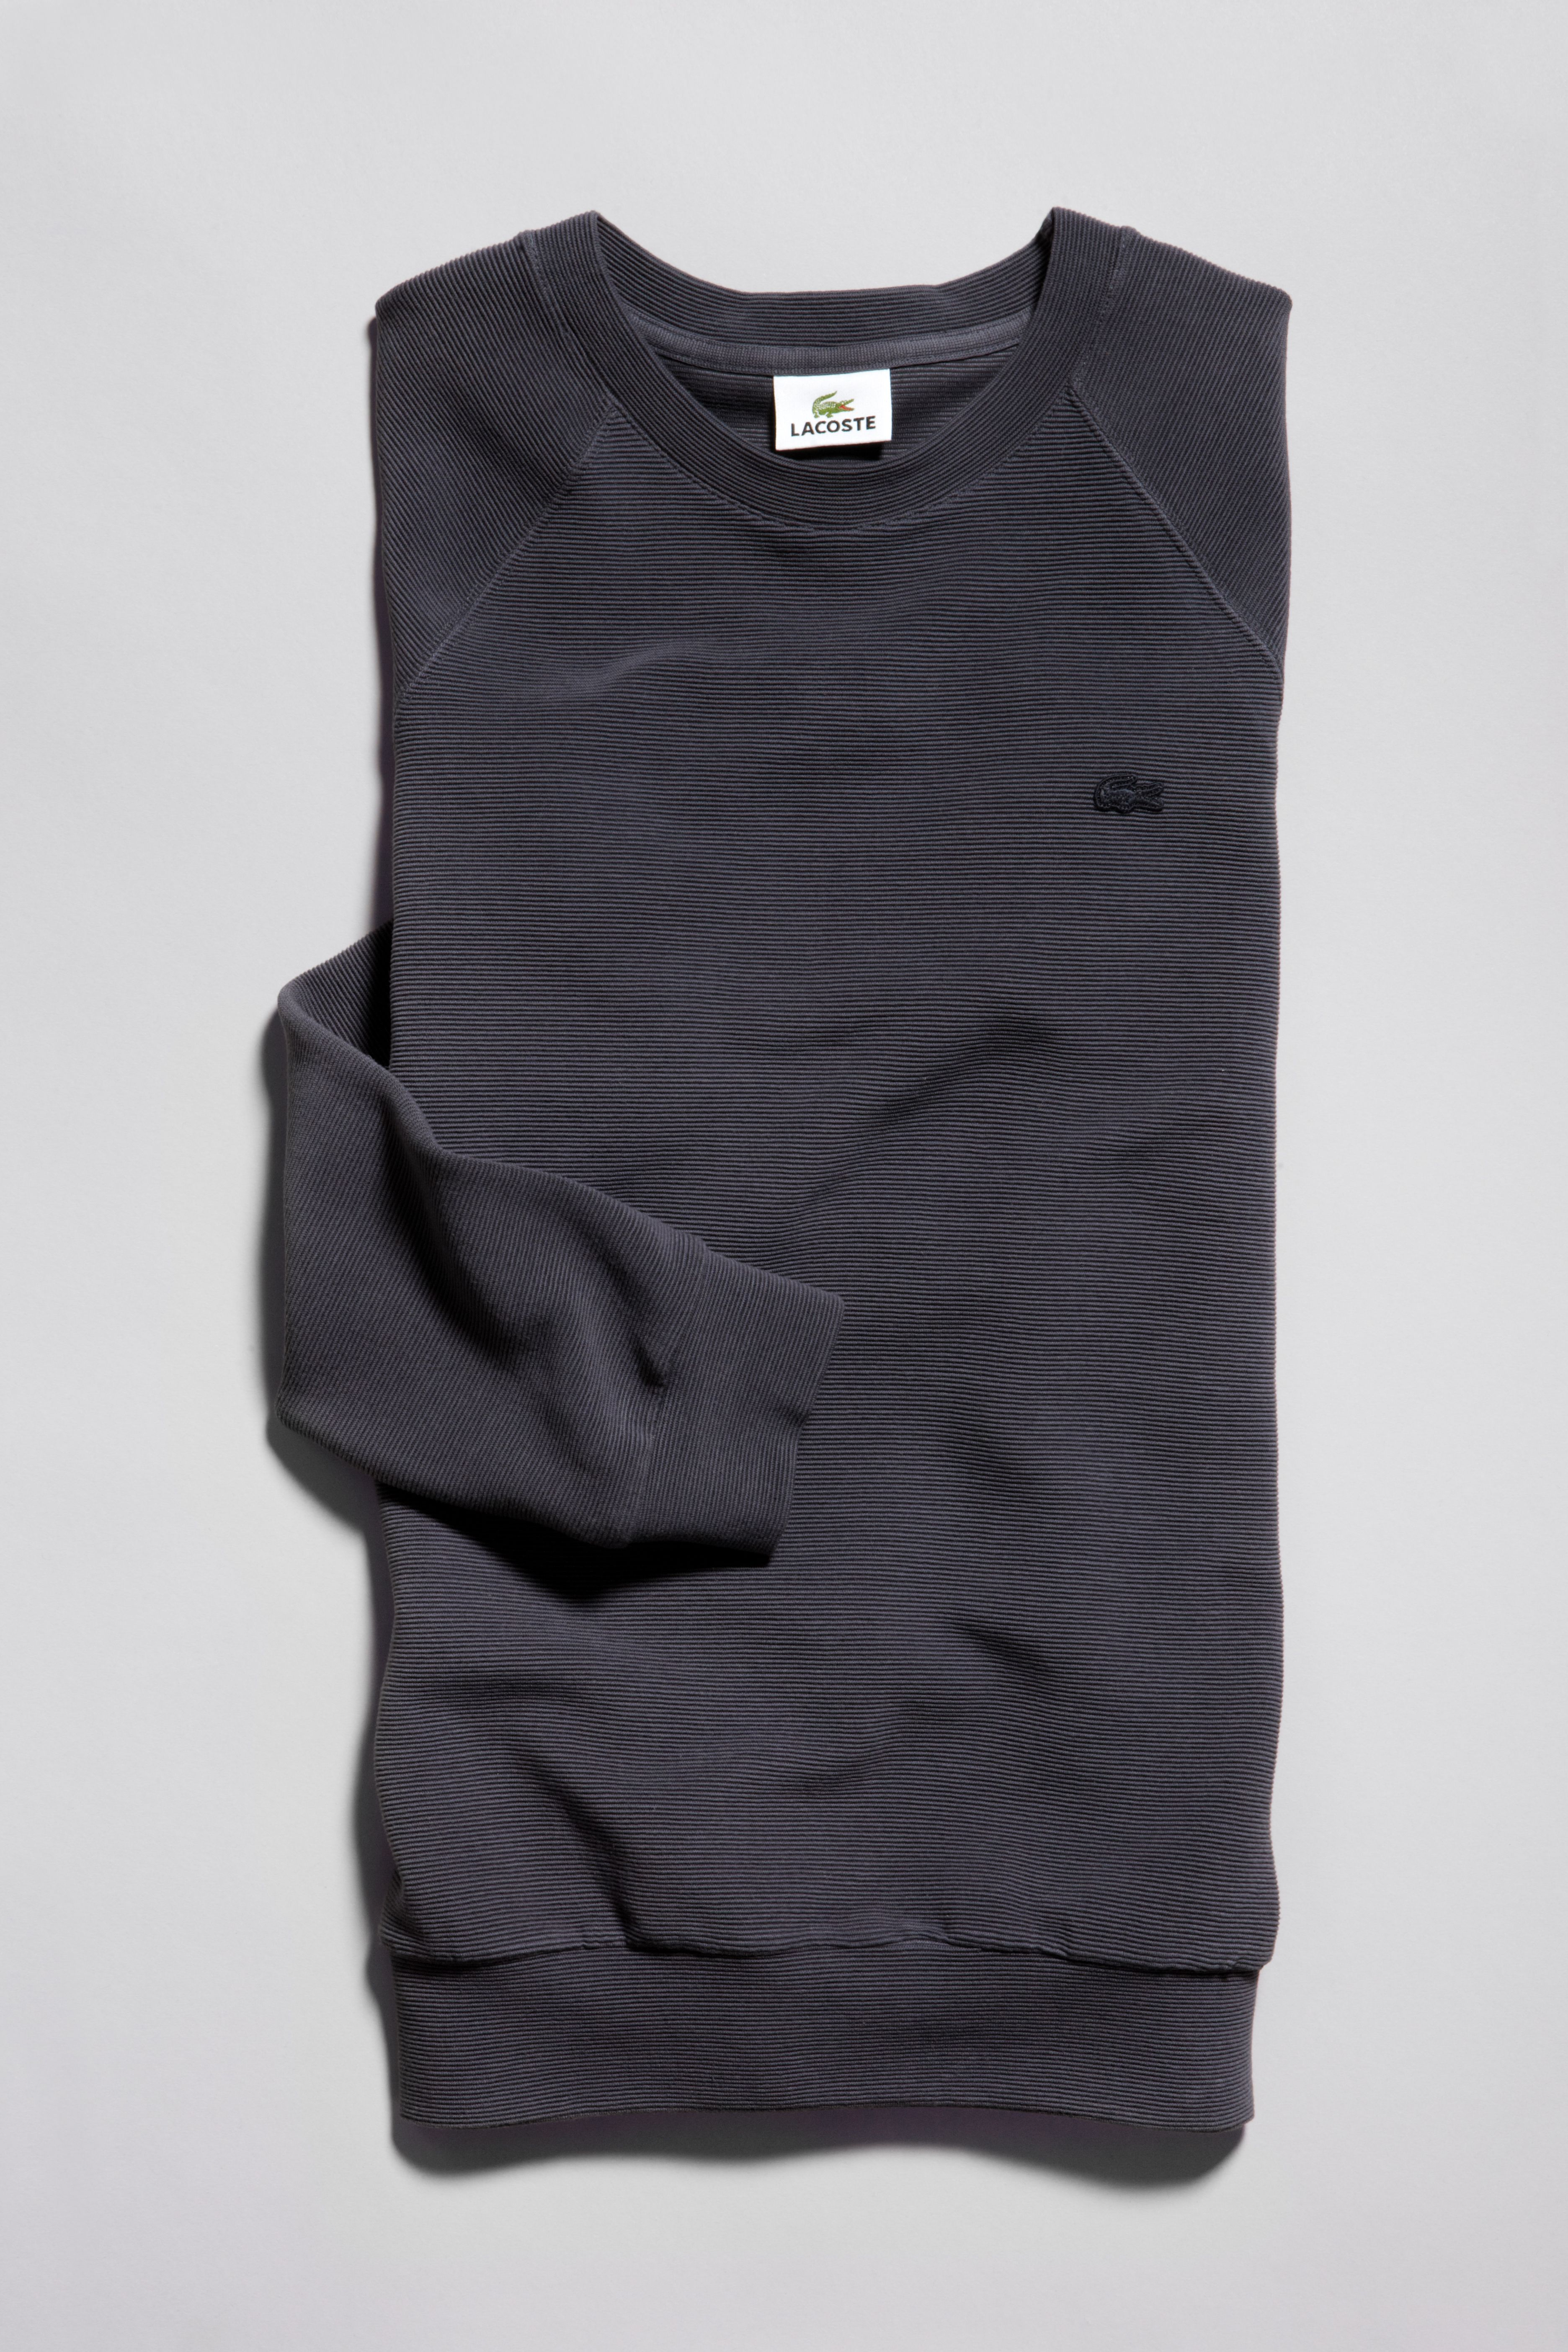 0164c6e357 Let the adventure begin with a black sweater from the Lacoste ...